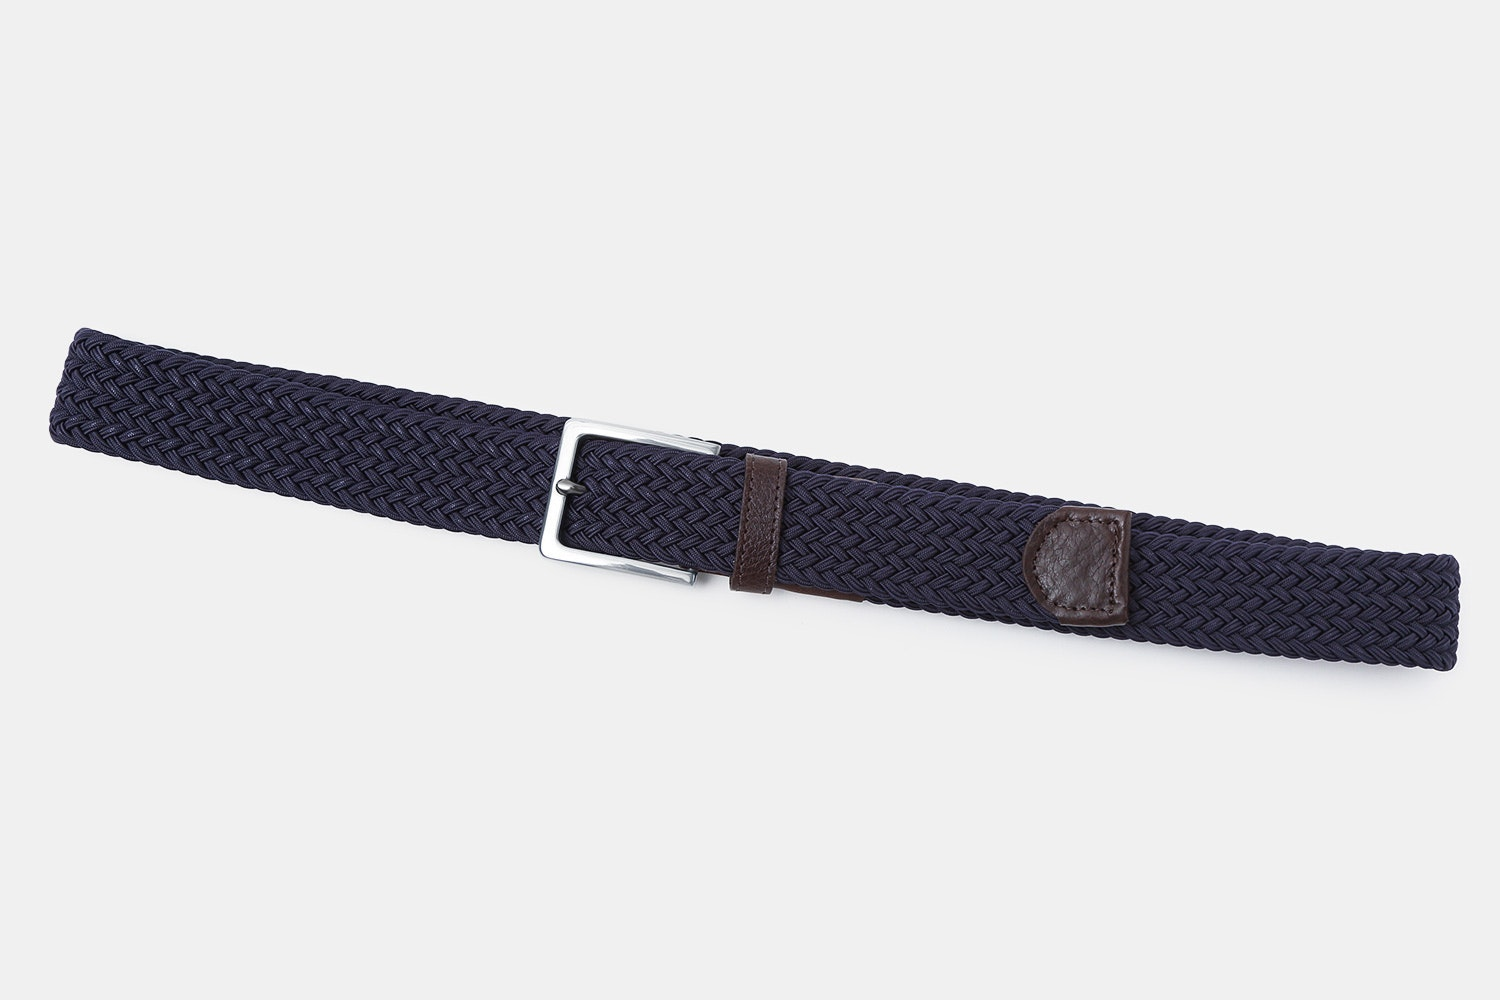 British Belt Co. Woven Elba Belt